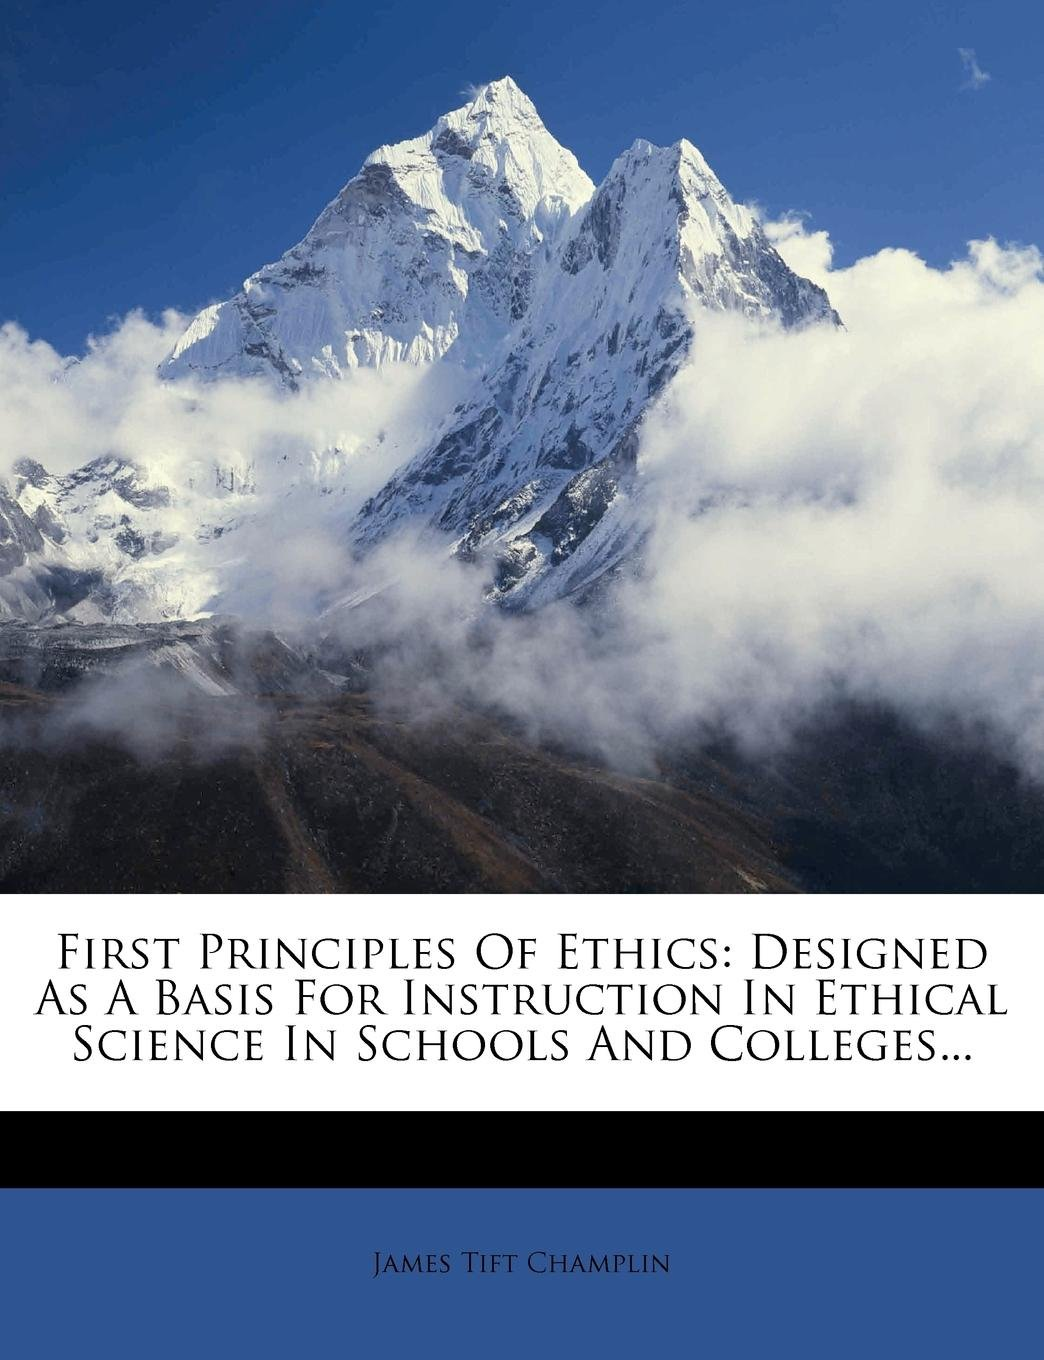 First Principles Of Ethics: Designed As A Basis For Instruction In Ethical Science In Schools And Colleges... ebook